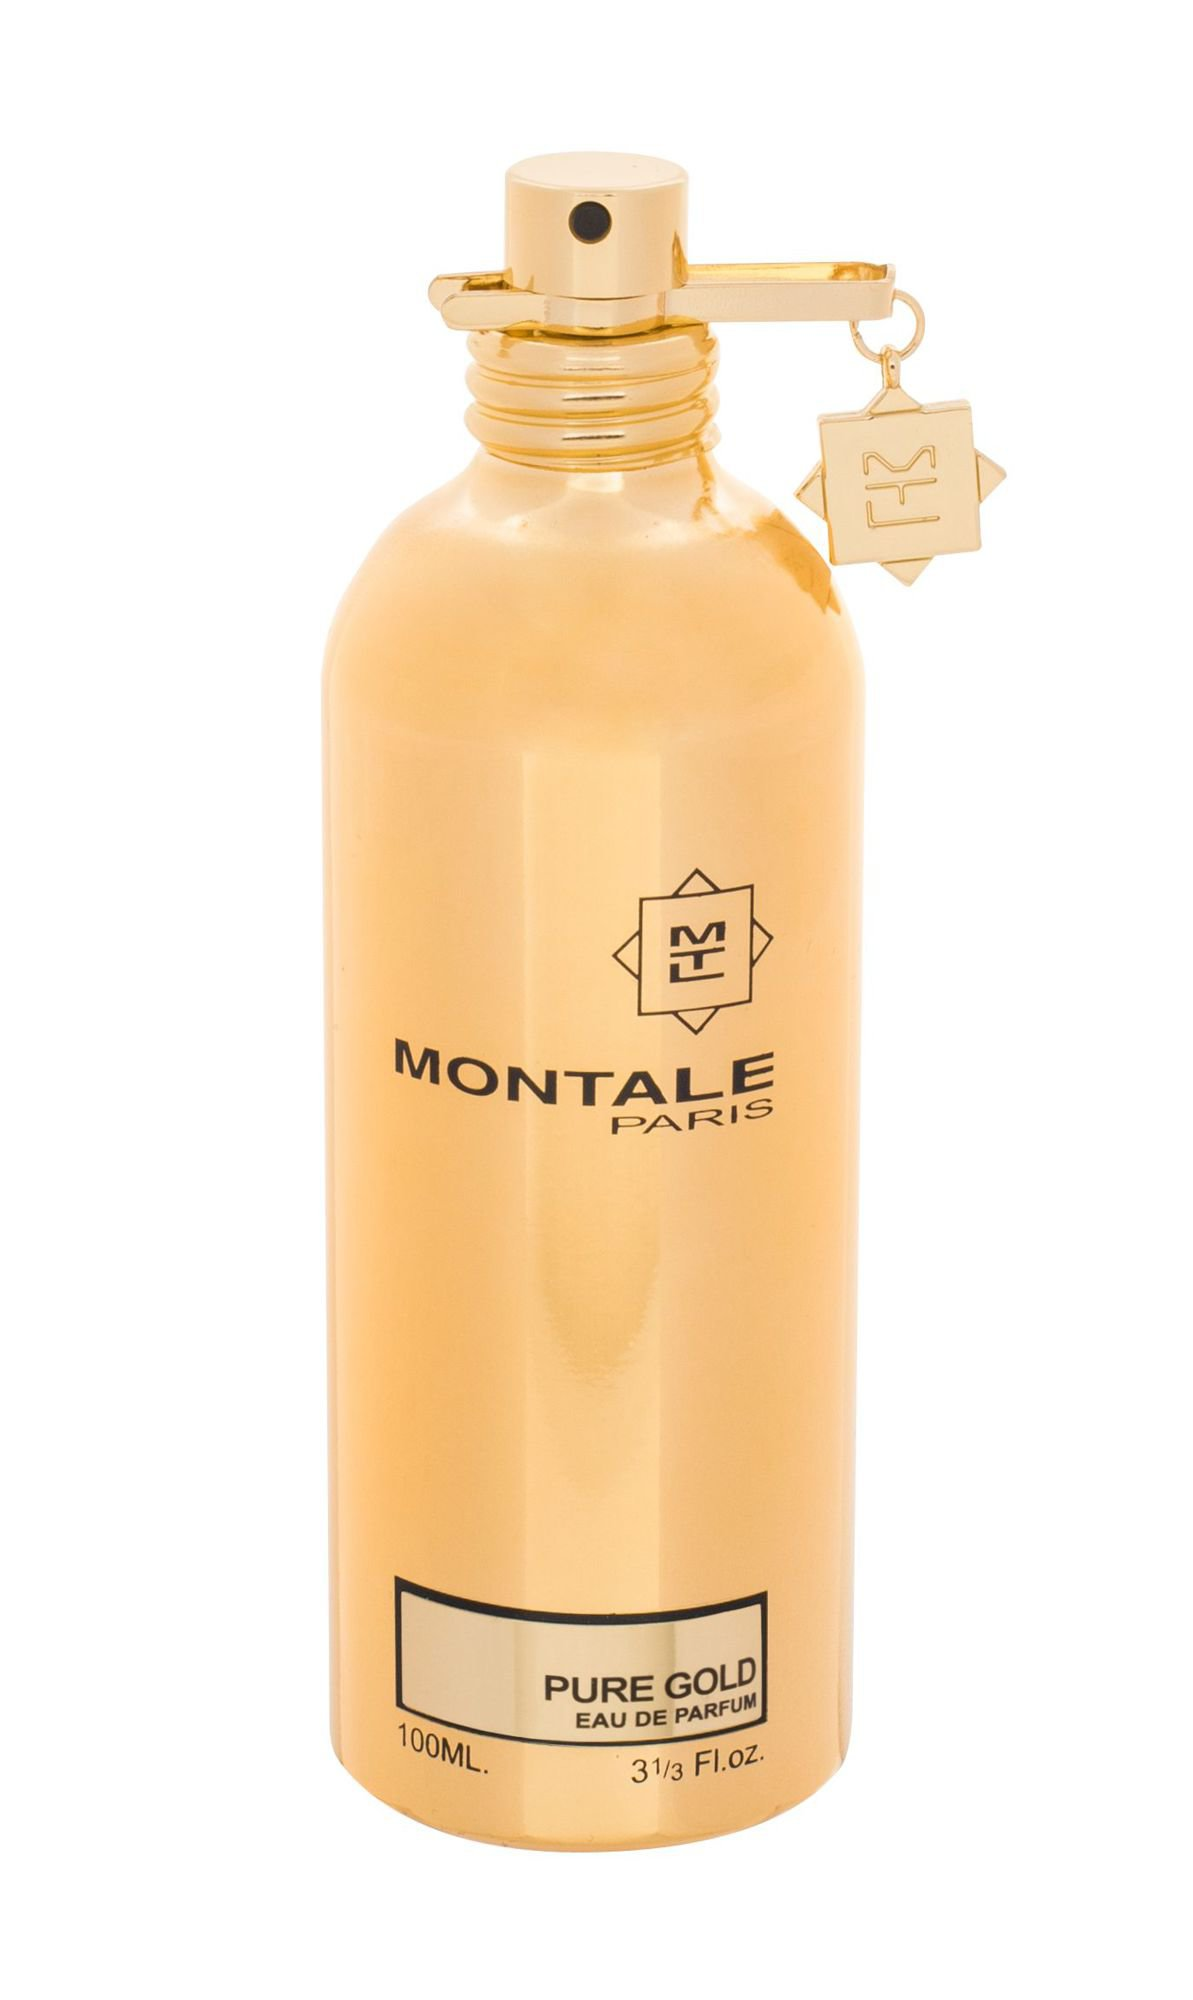 Montale Paris Pure Gold, edp 100ml